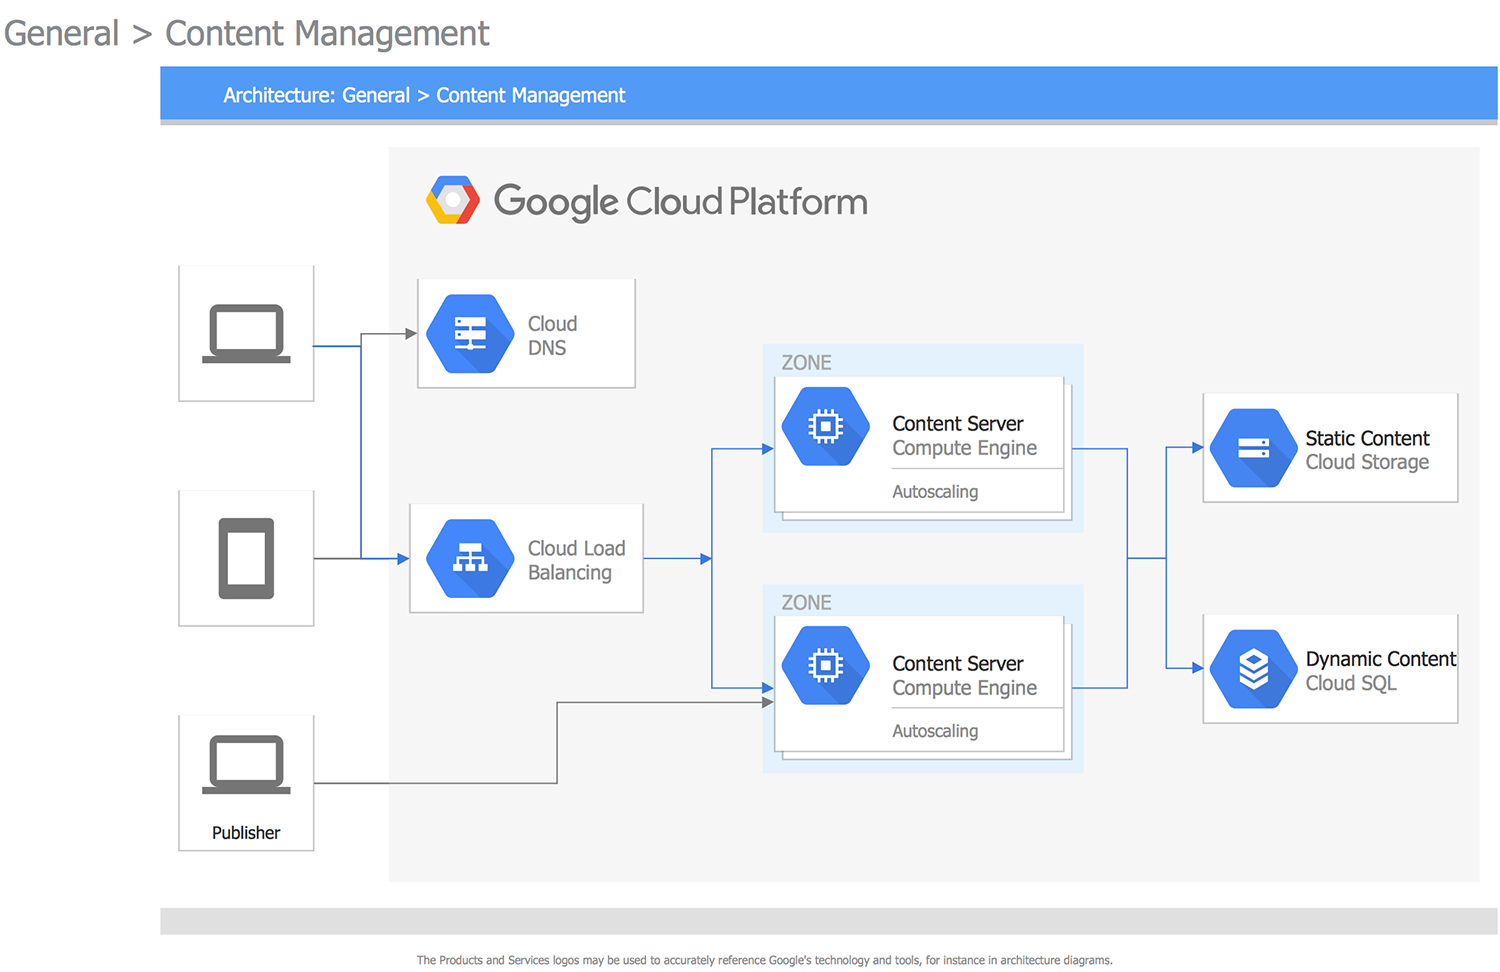 General Content Management This Diagram Was Created In Conceptdraw Diagram Using The Combination Of Libraries From The Google C Cloud Platform Clouds Platform